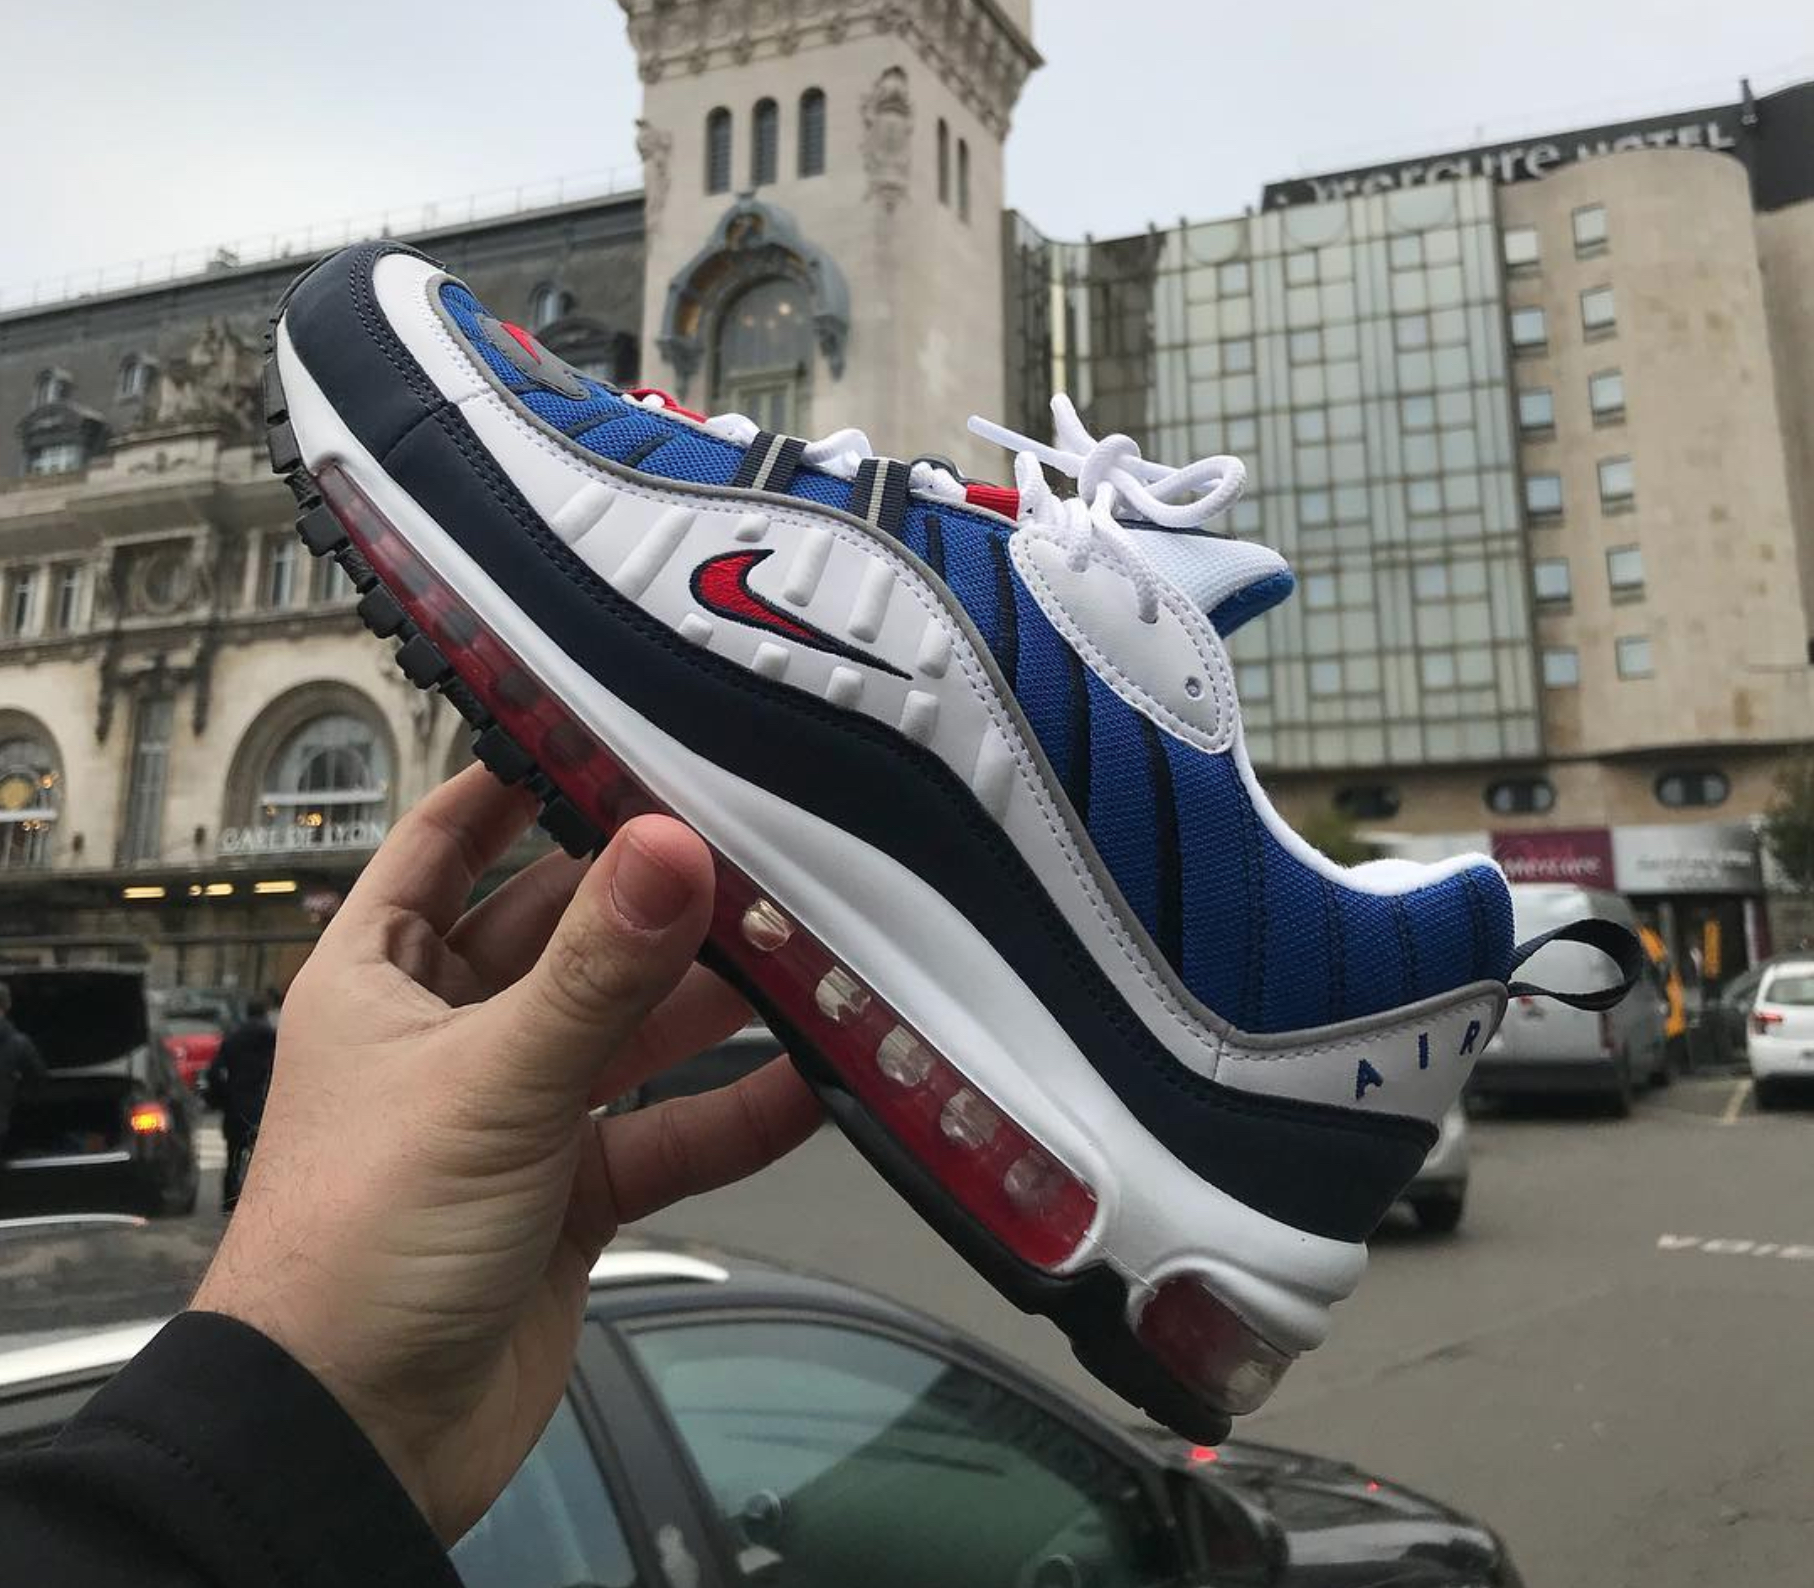 quality design f9360 72a11 The Nike Air Max 98 Will Be Back for 2018 - WearTesters